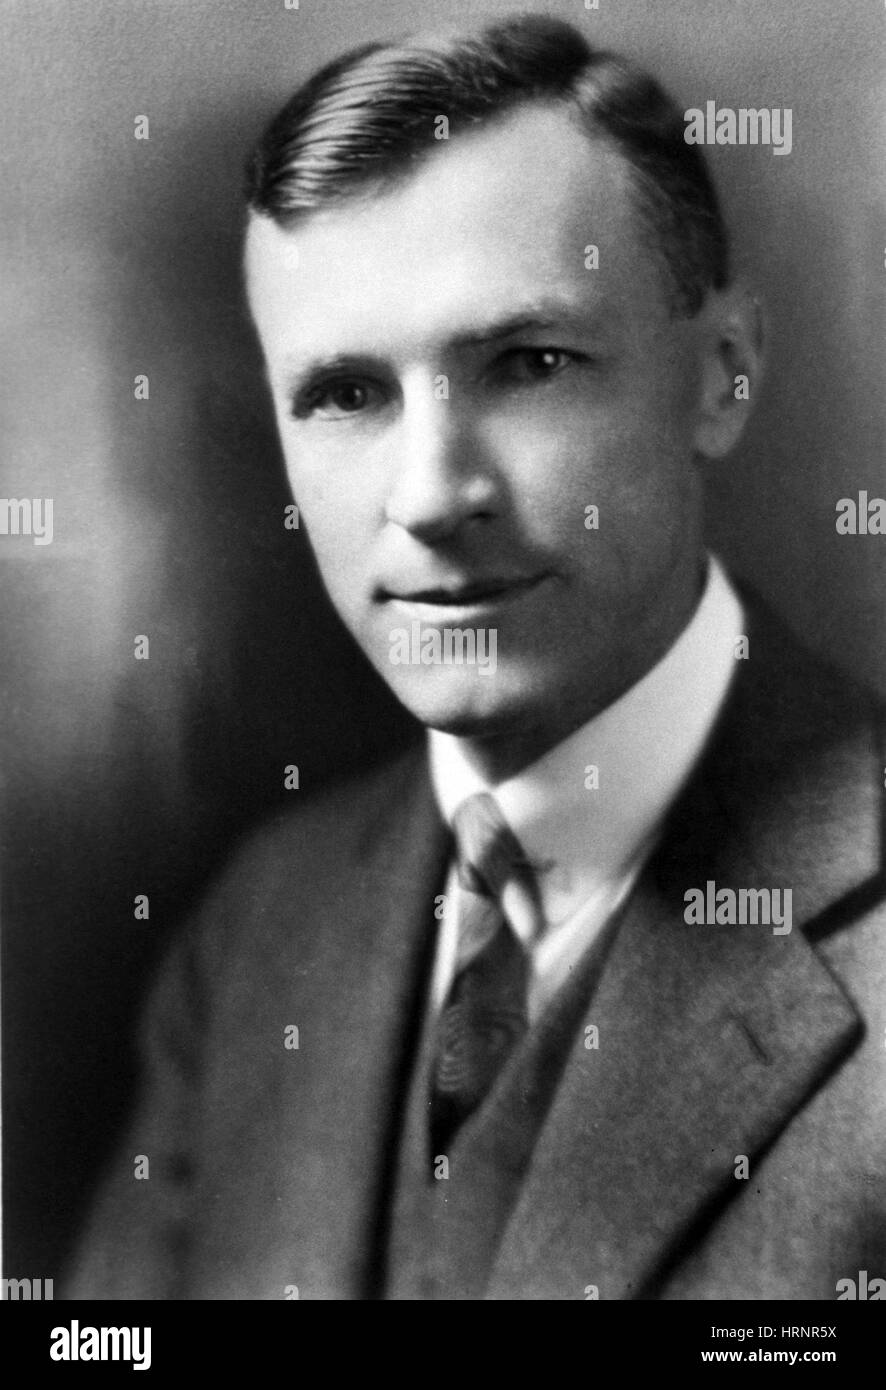 William Murphy, American Medical Researcher - Stock Image